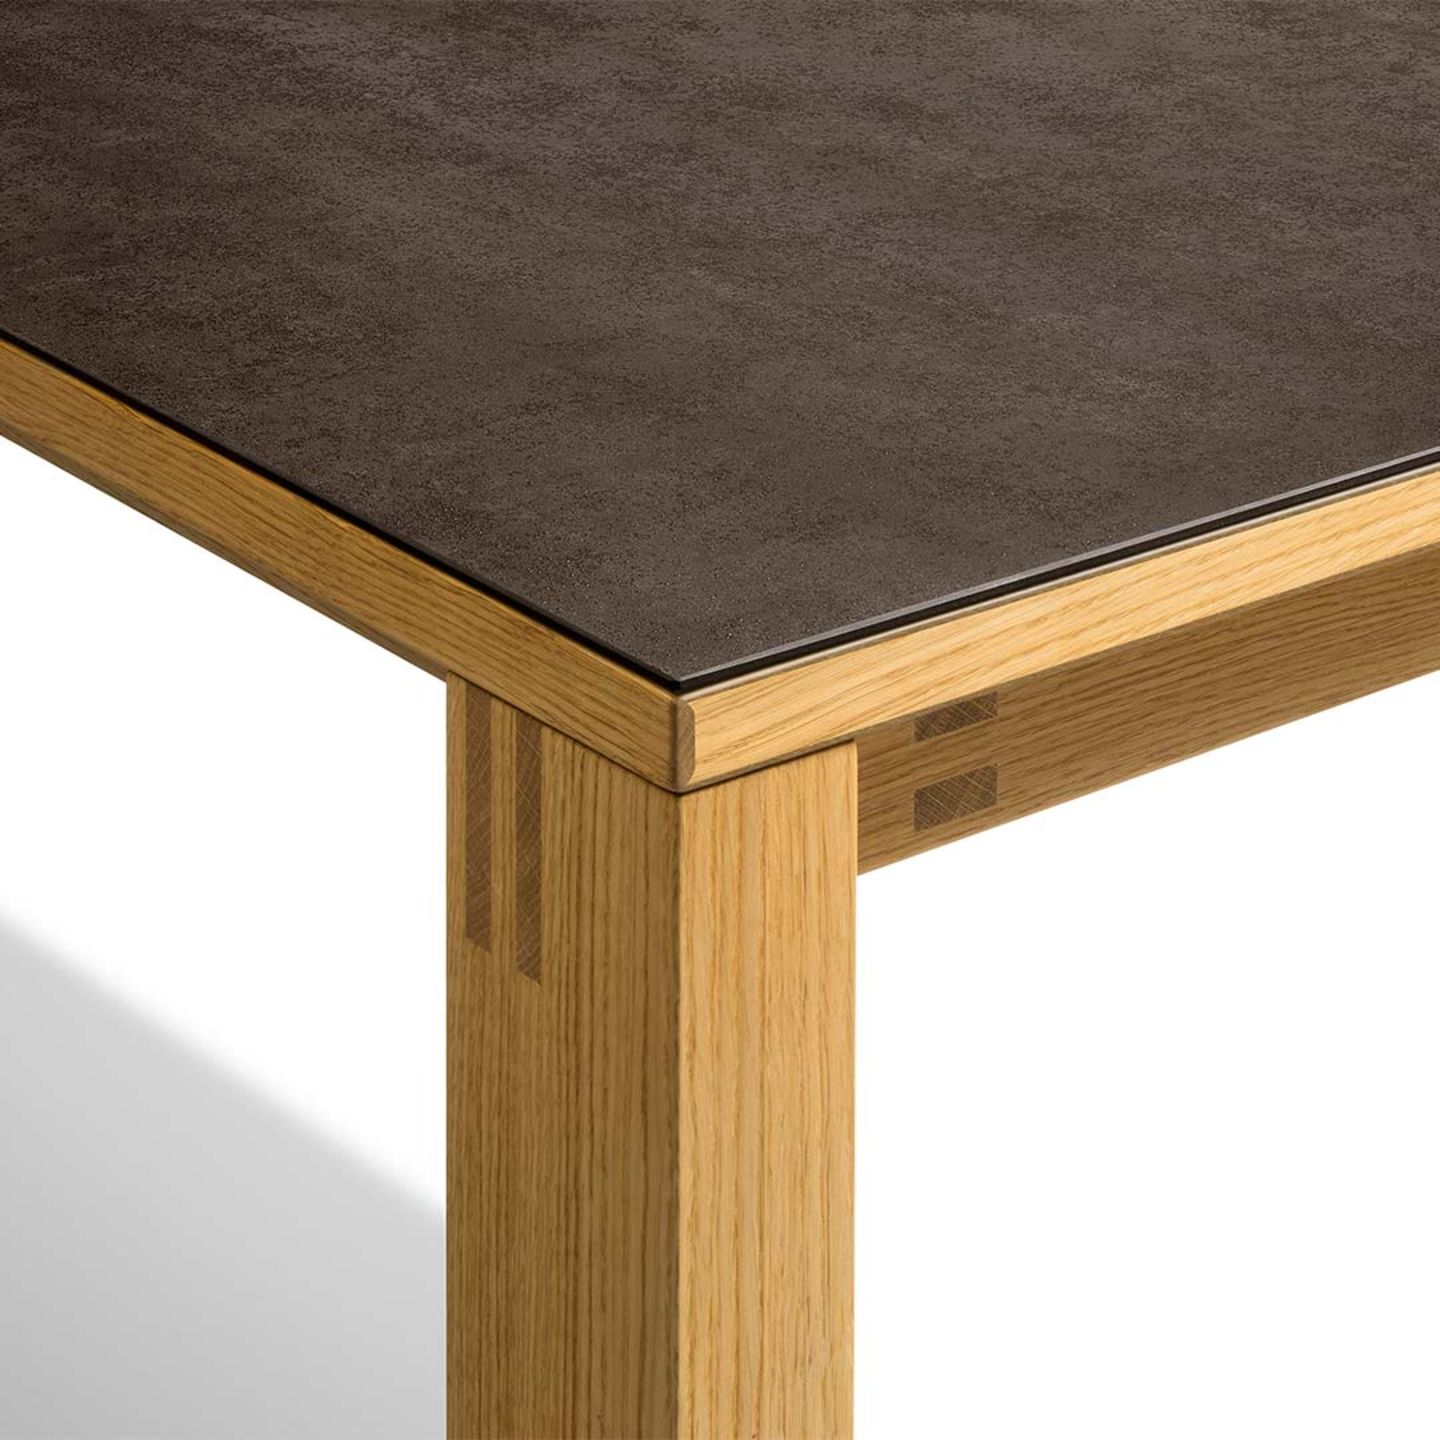 magnum extendable table with slot-and-pin connection with ceramic surface